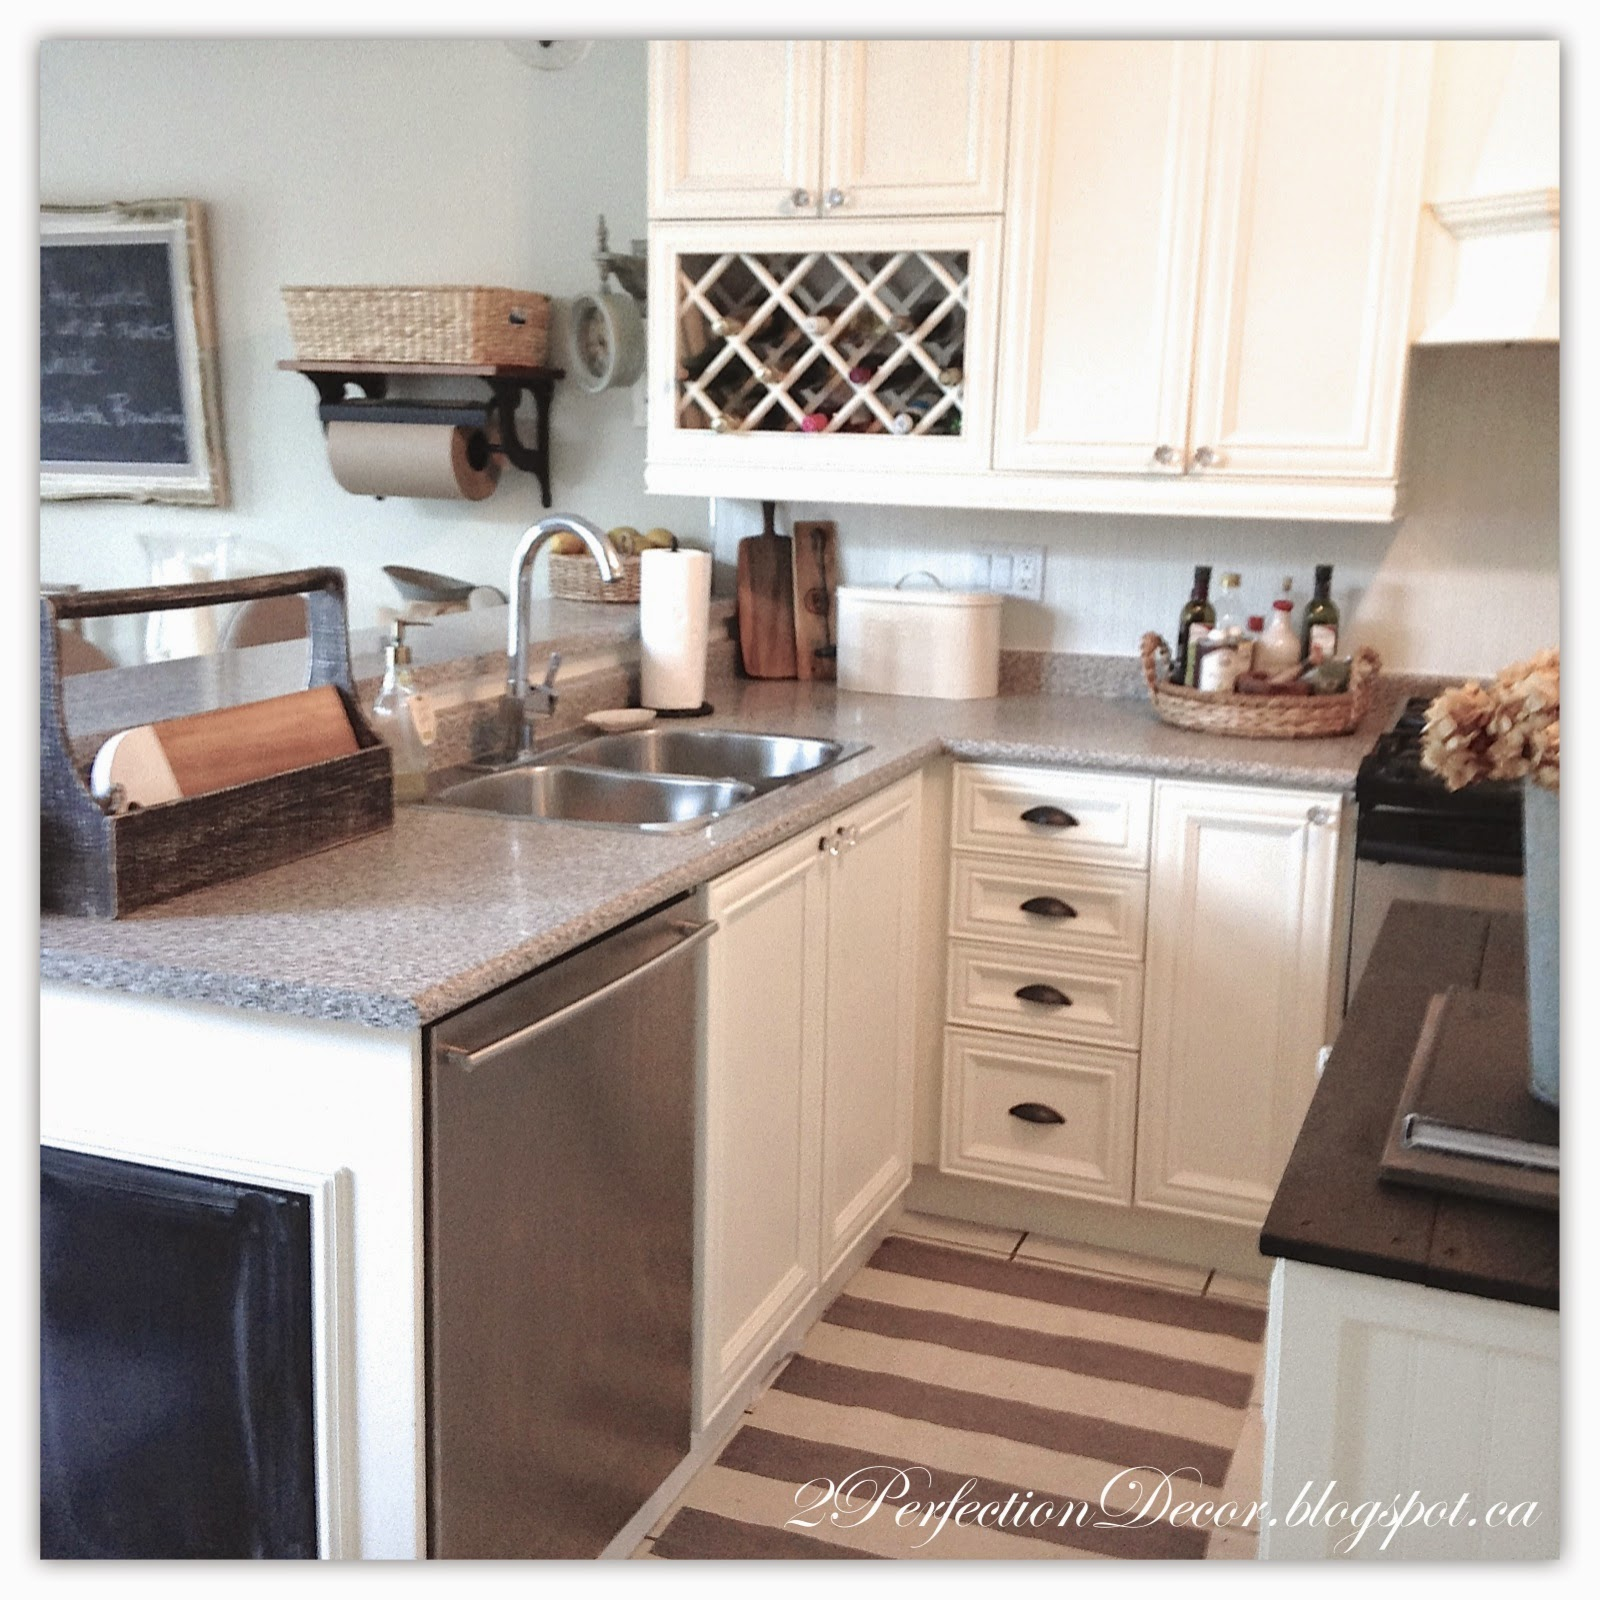 Painted French Country Kitchen Reveal